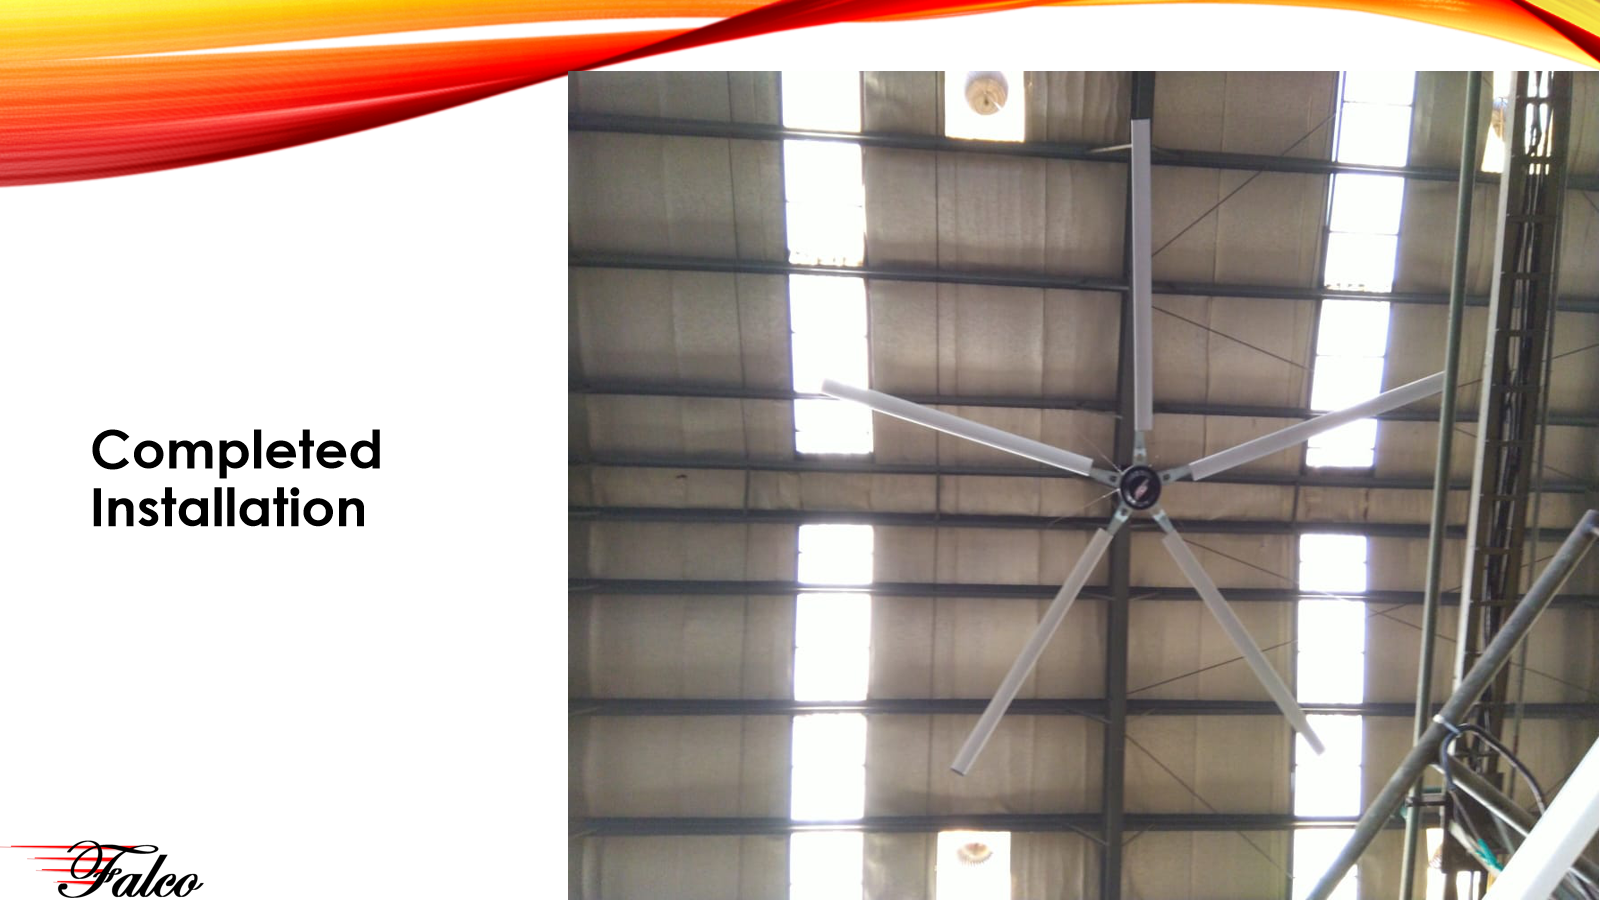 bic-cello-india-pvt.-ltd.-installed-epoch-hvls-fans-specification-11-.png